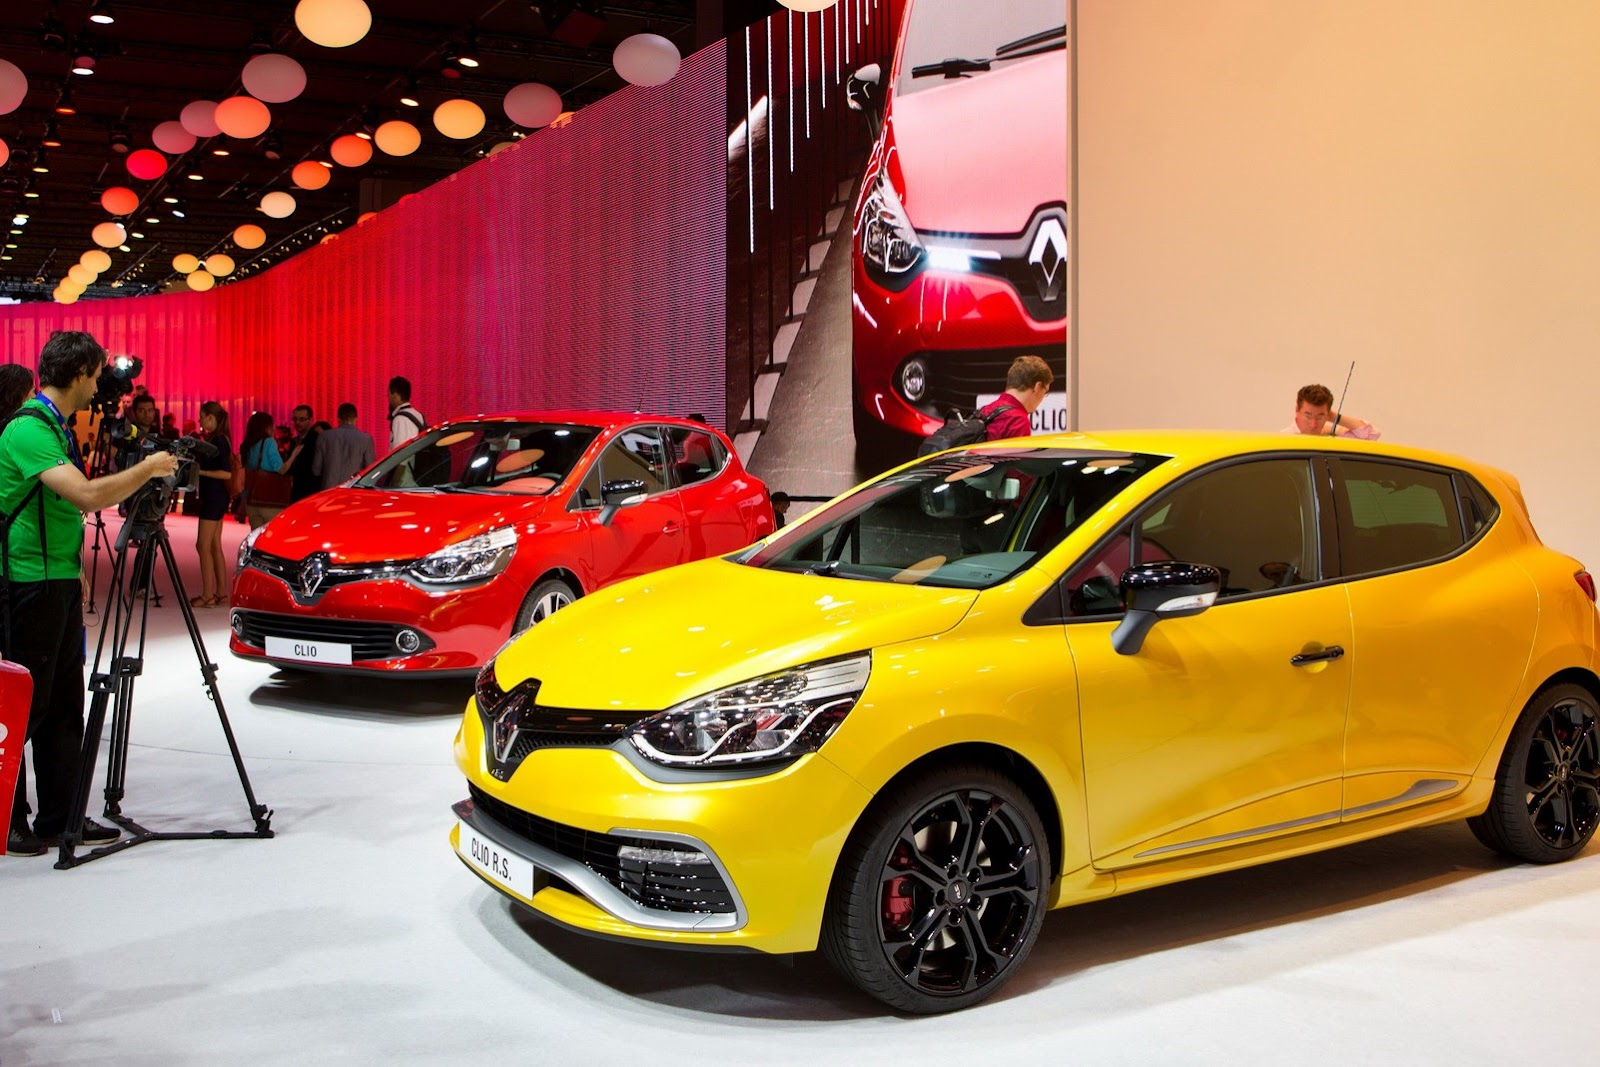 renault to produce new clio mk4 simultaneously in france and turkey carscoop. Black Bedroom Furniture Sets. Home Design Ideas